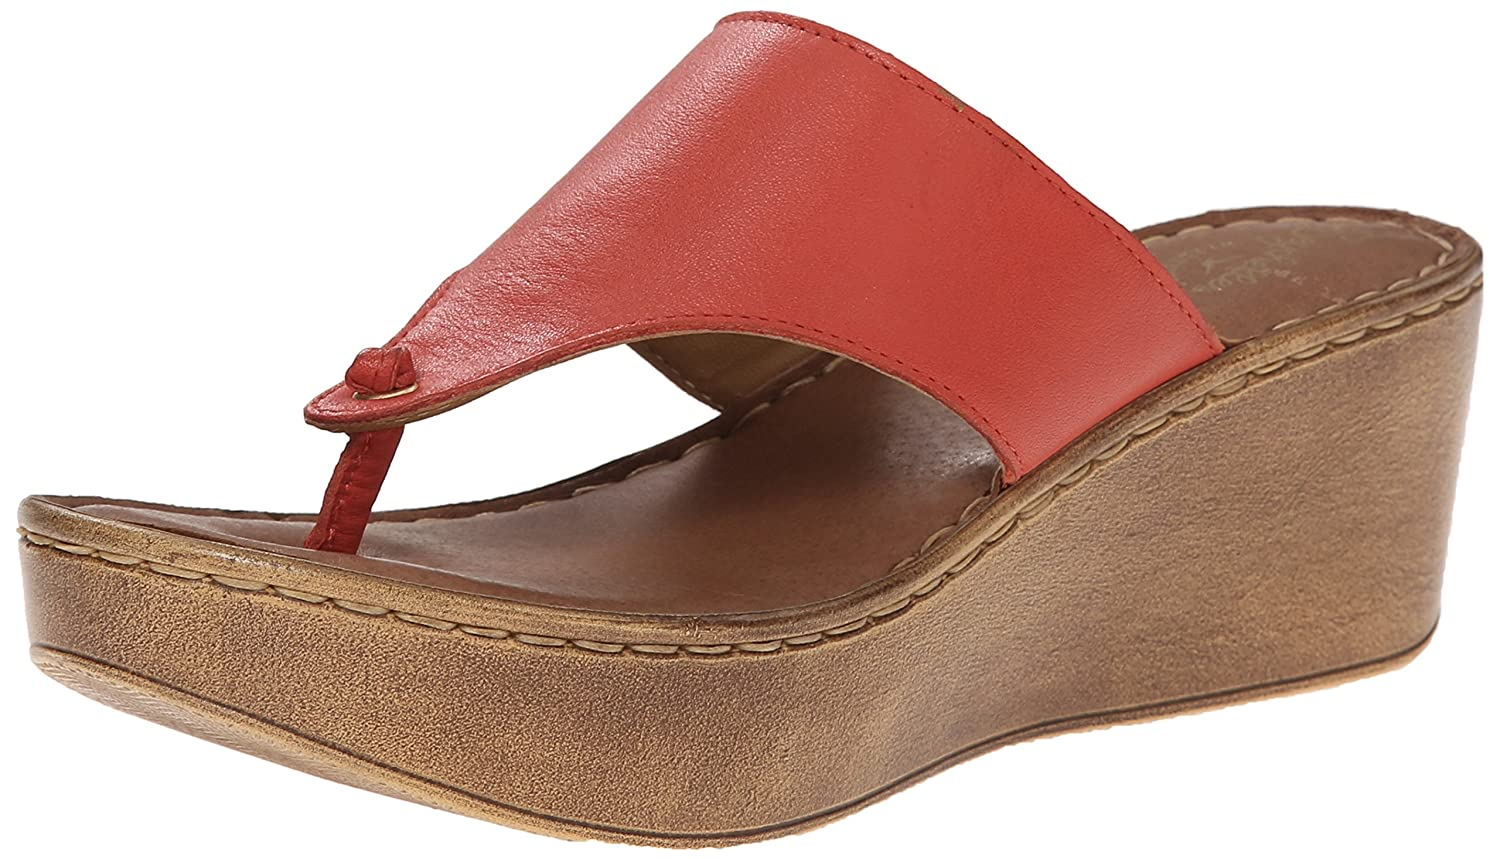 Seychelles Women's Essential Wedge Sandal collins essential chinese dictionary